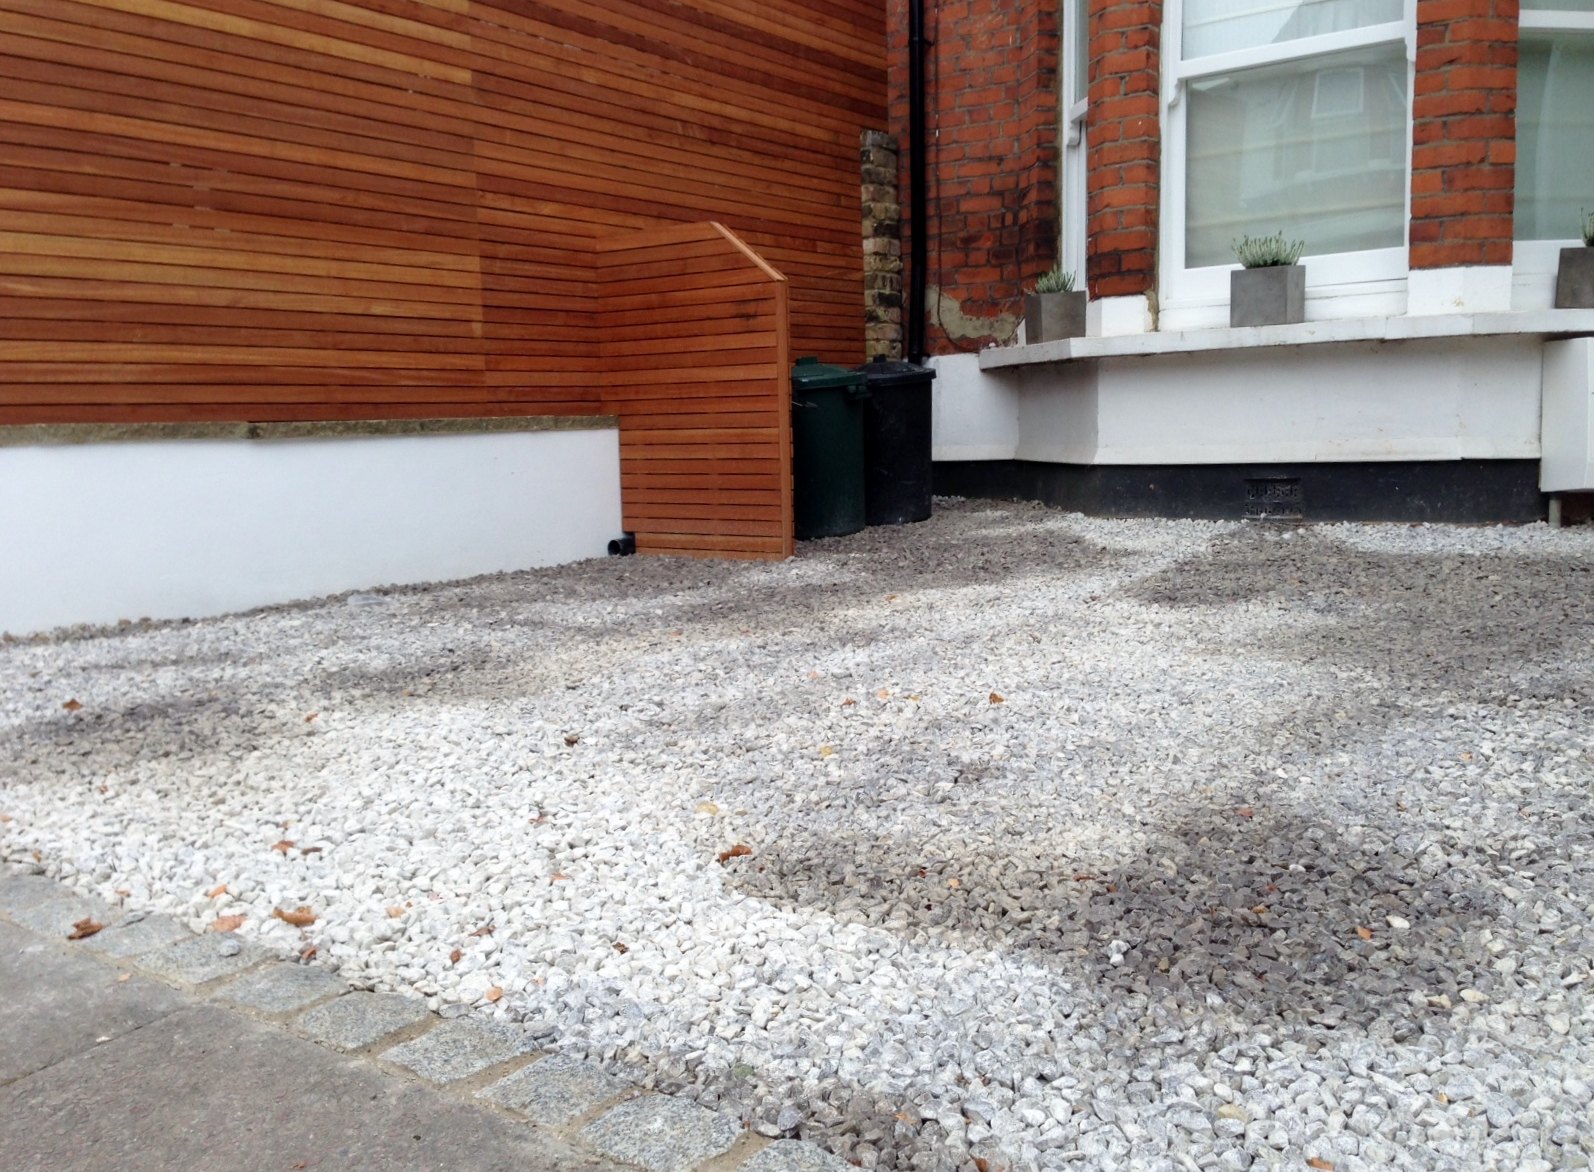 front garden drivewat gravel travertine paving path hardwood privacy screen trellis tooting london (14)